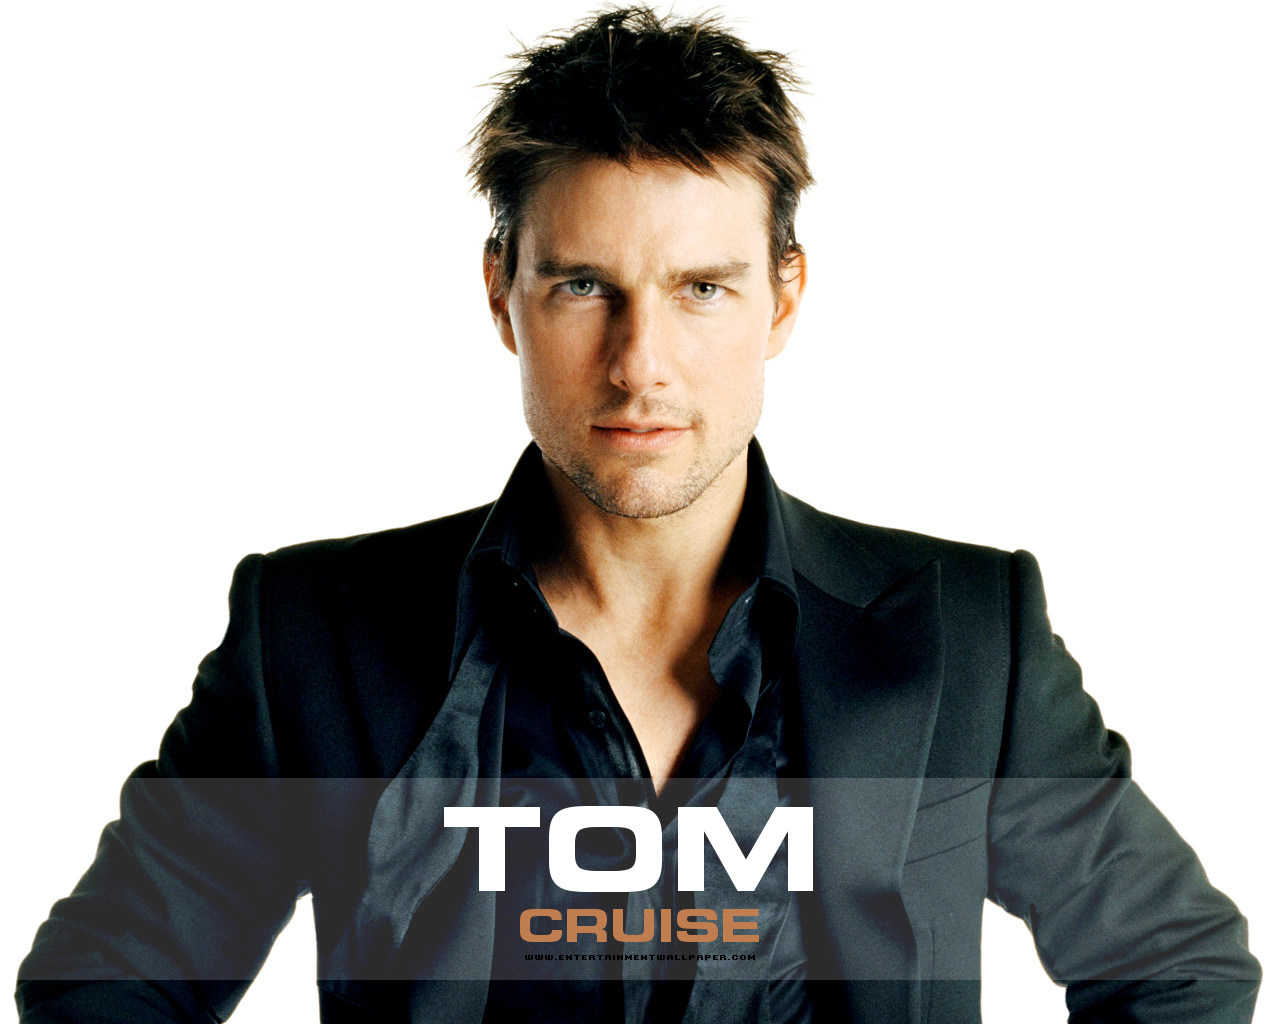 Wallpaperstopick: Tom Cruise Wallpapers